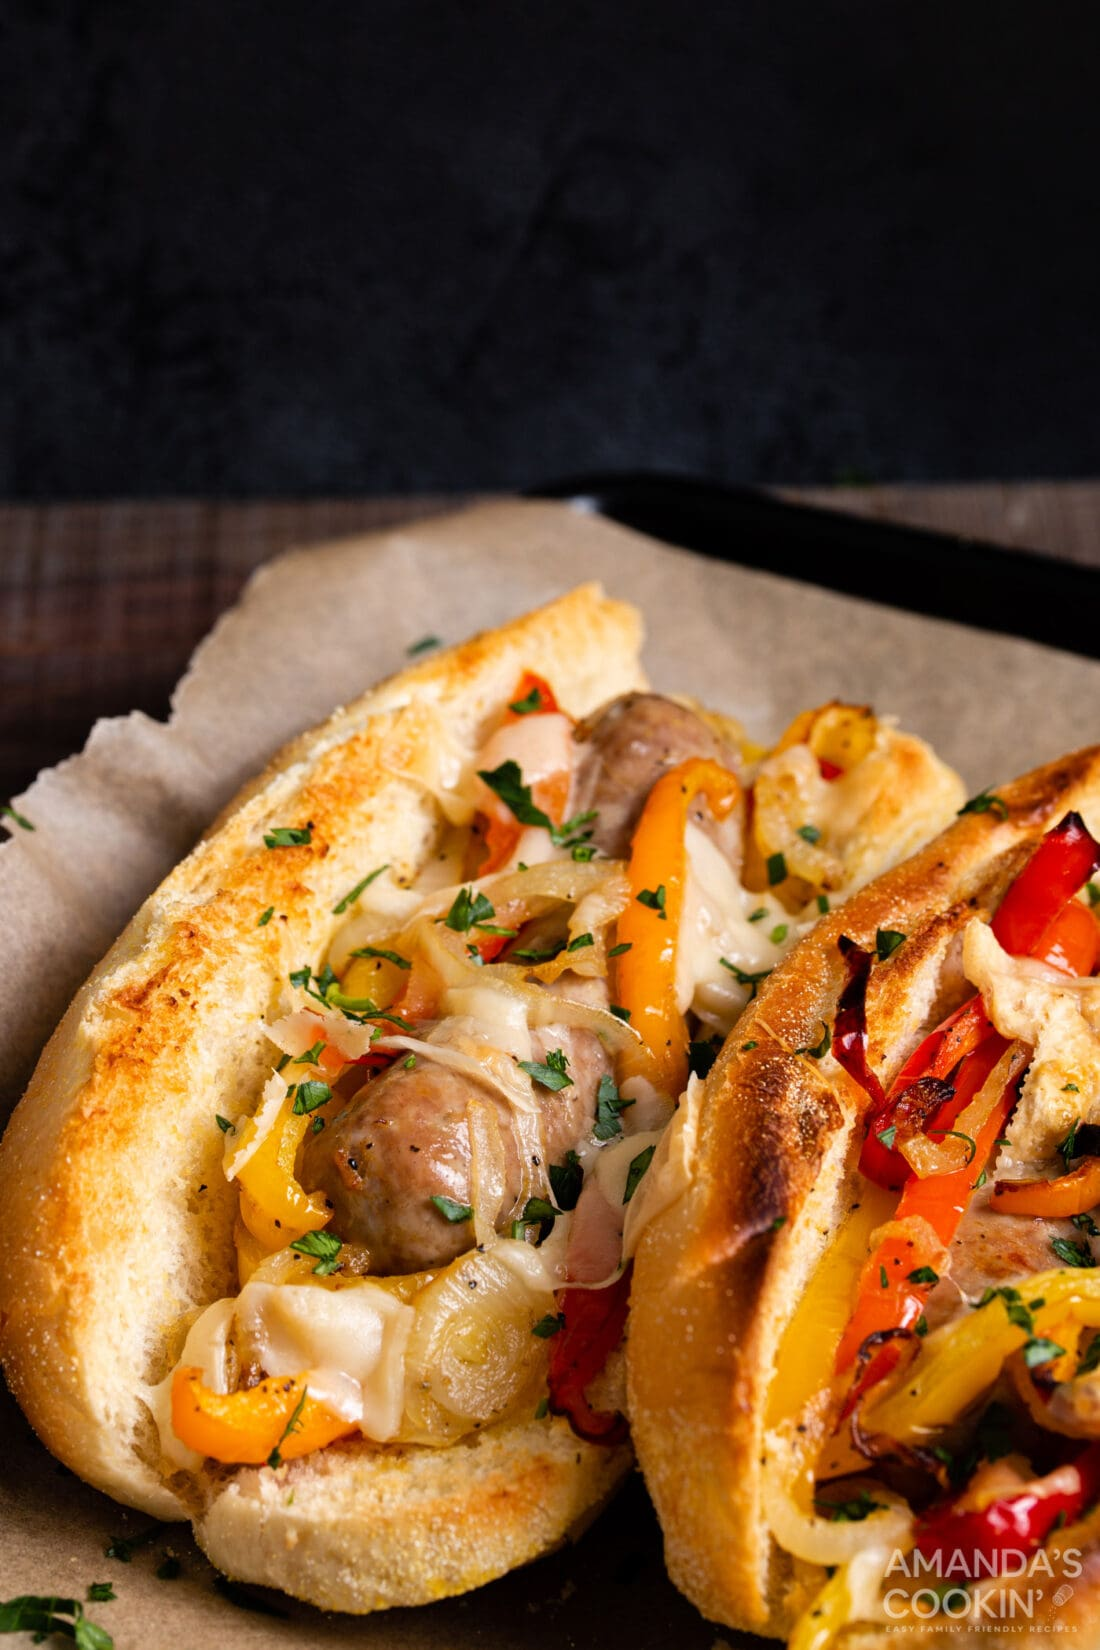 Air Fryer Italian Sausage and Peppers on a bun